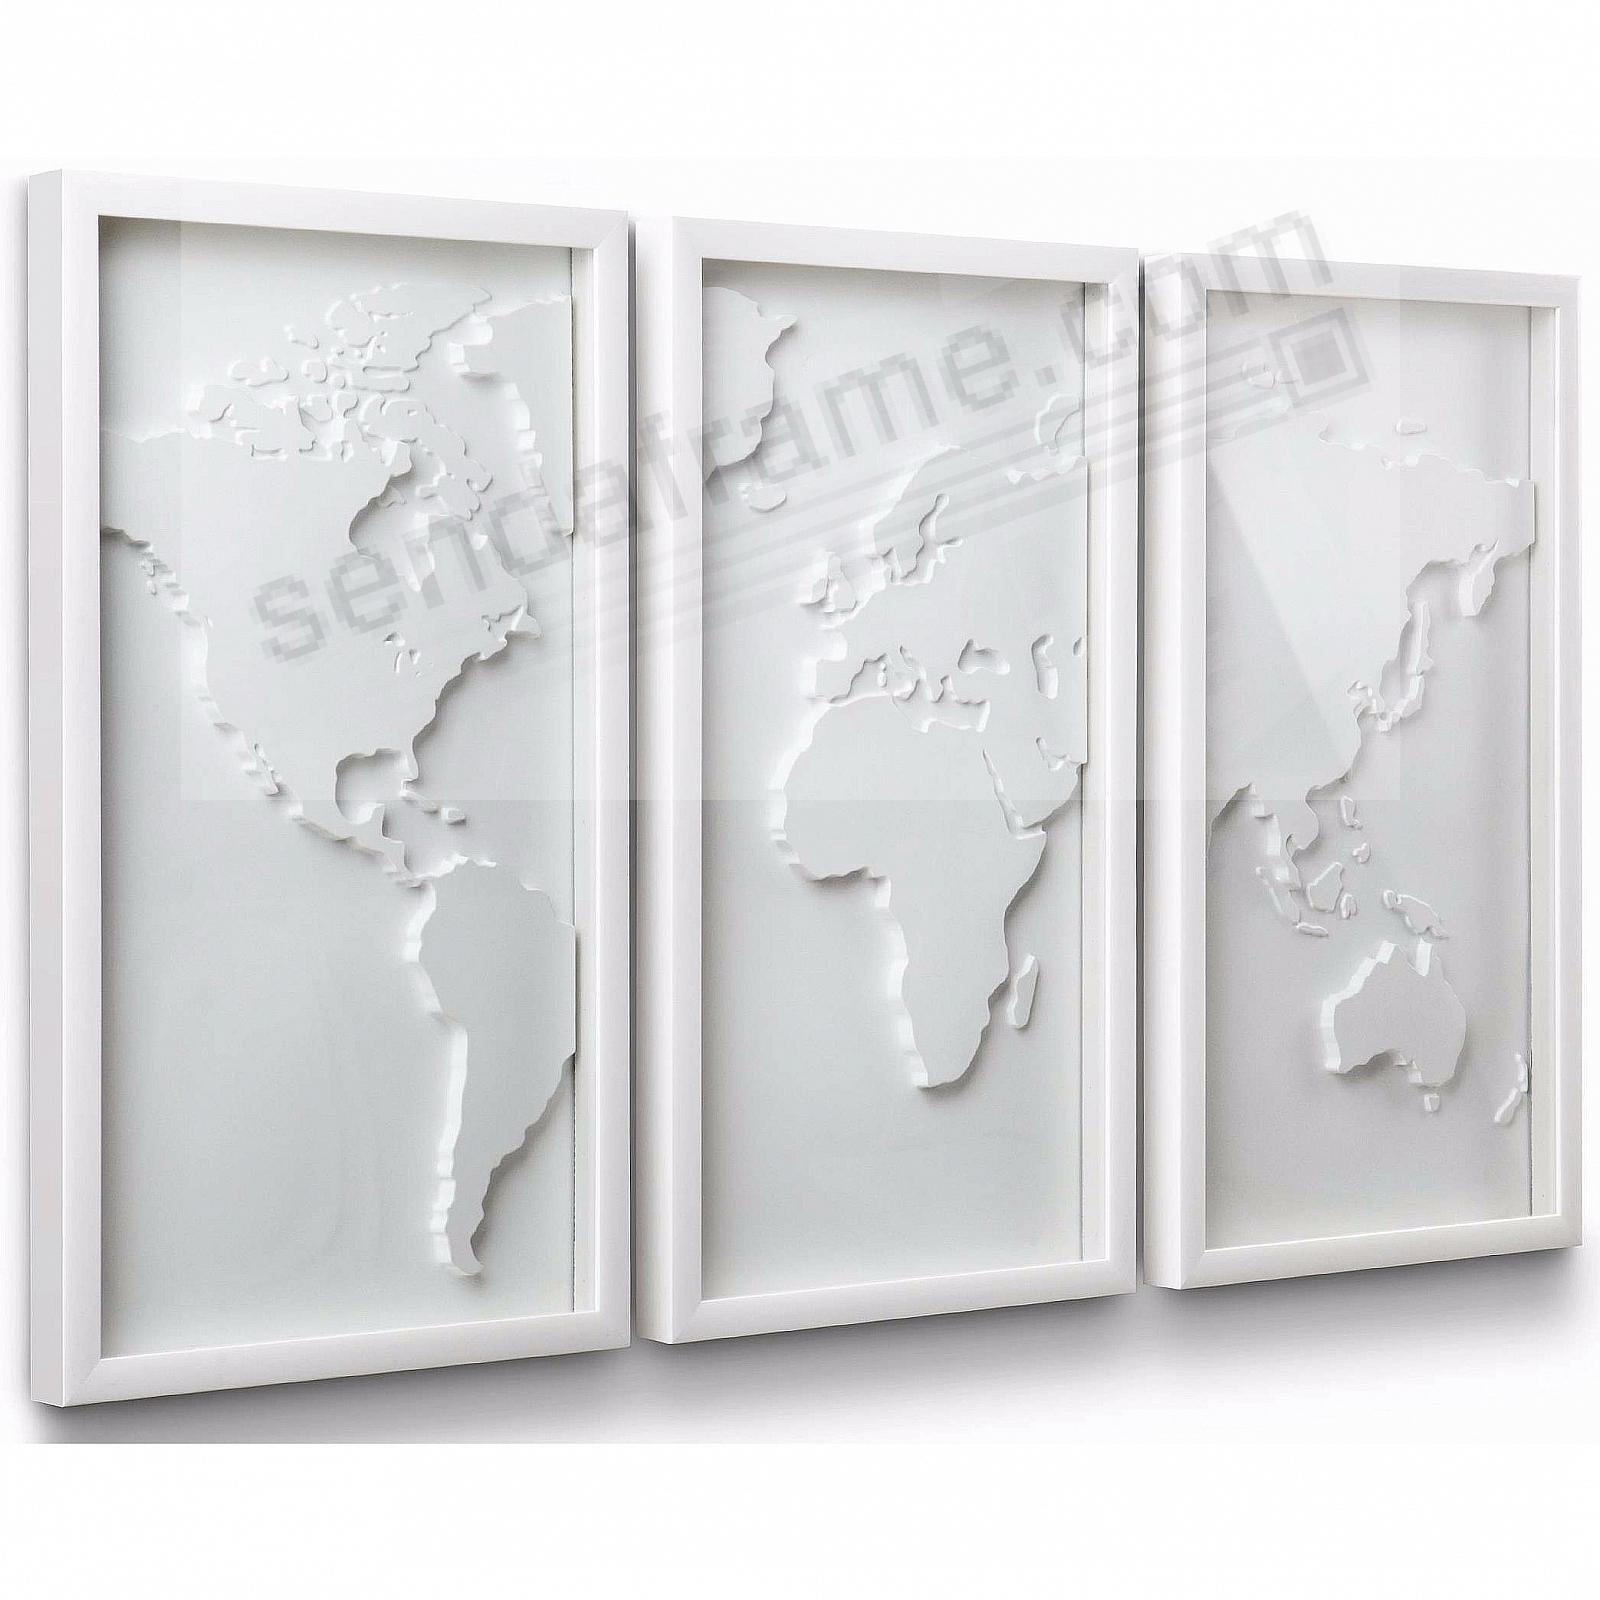 The Original MAPSTER 3-pc White Relief World Map by Umbra®